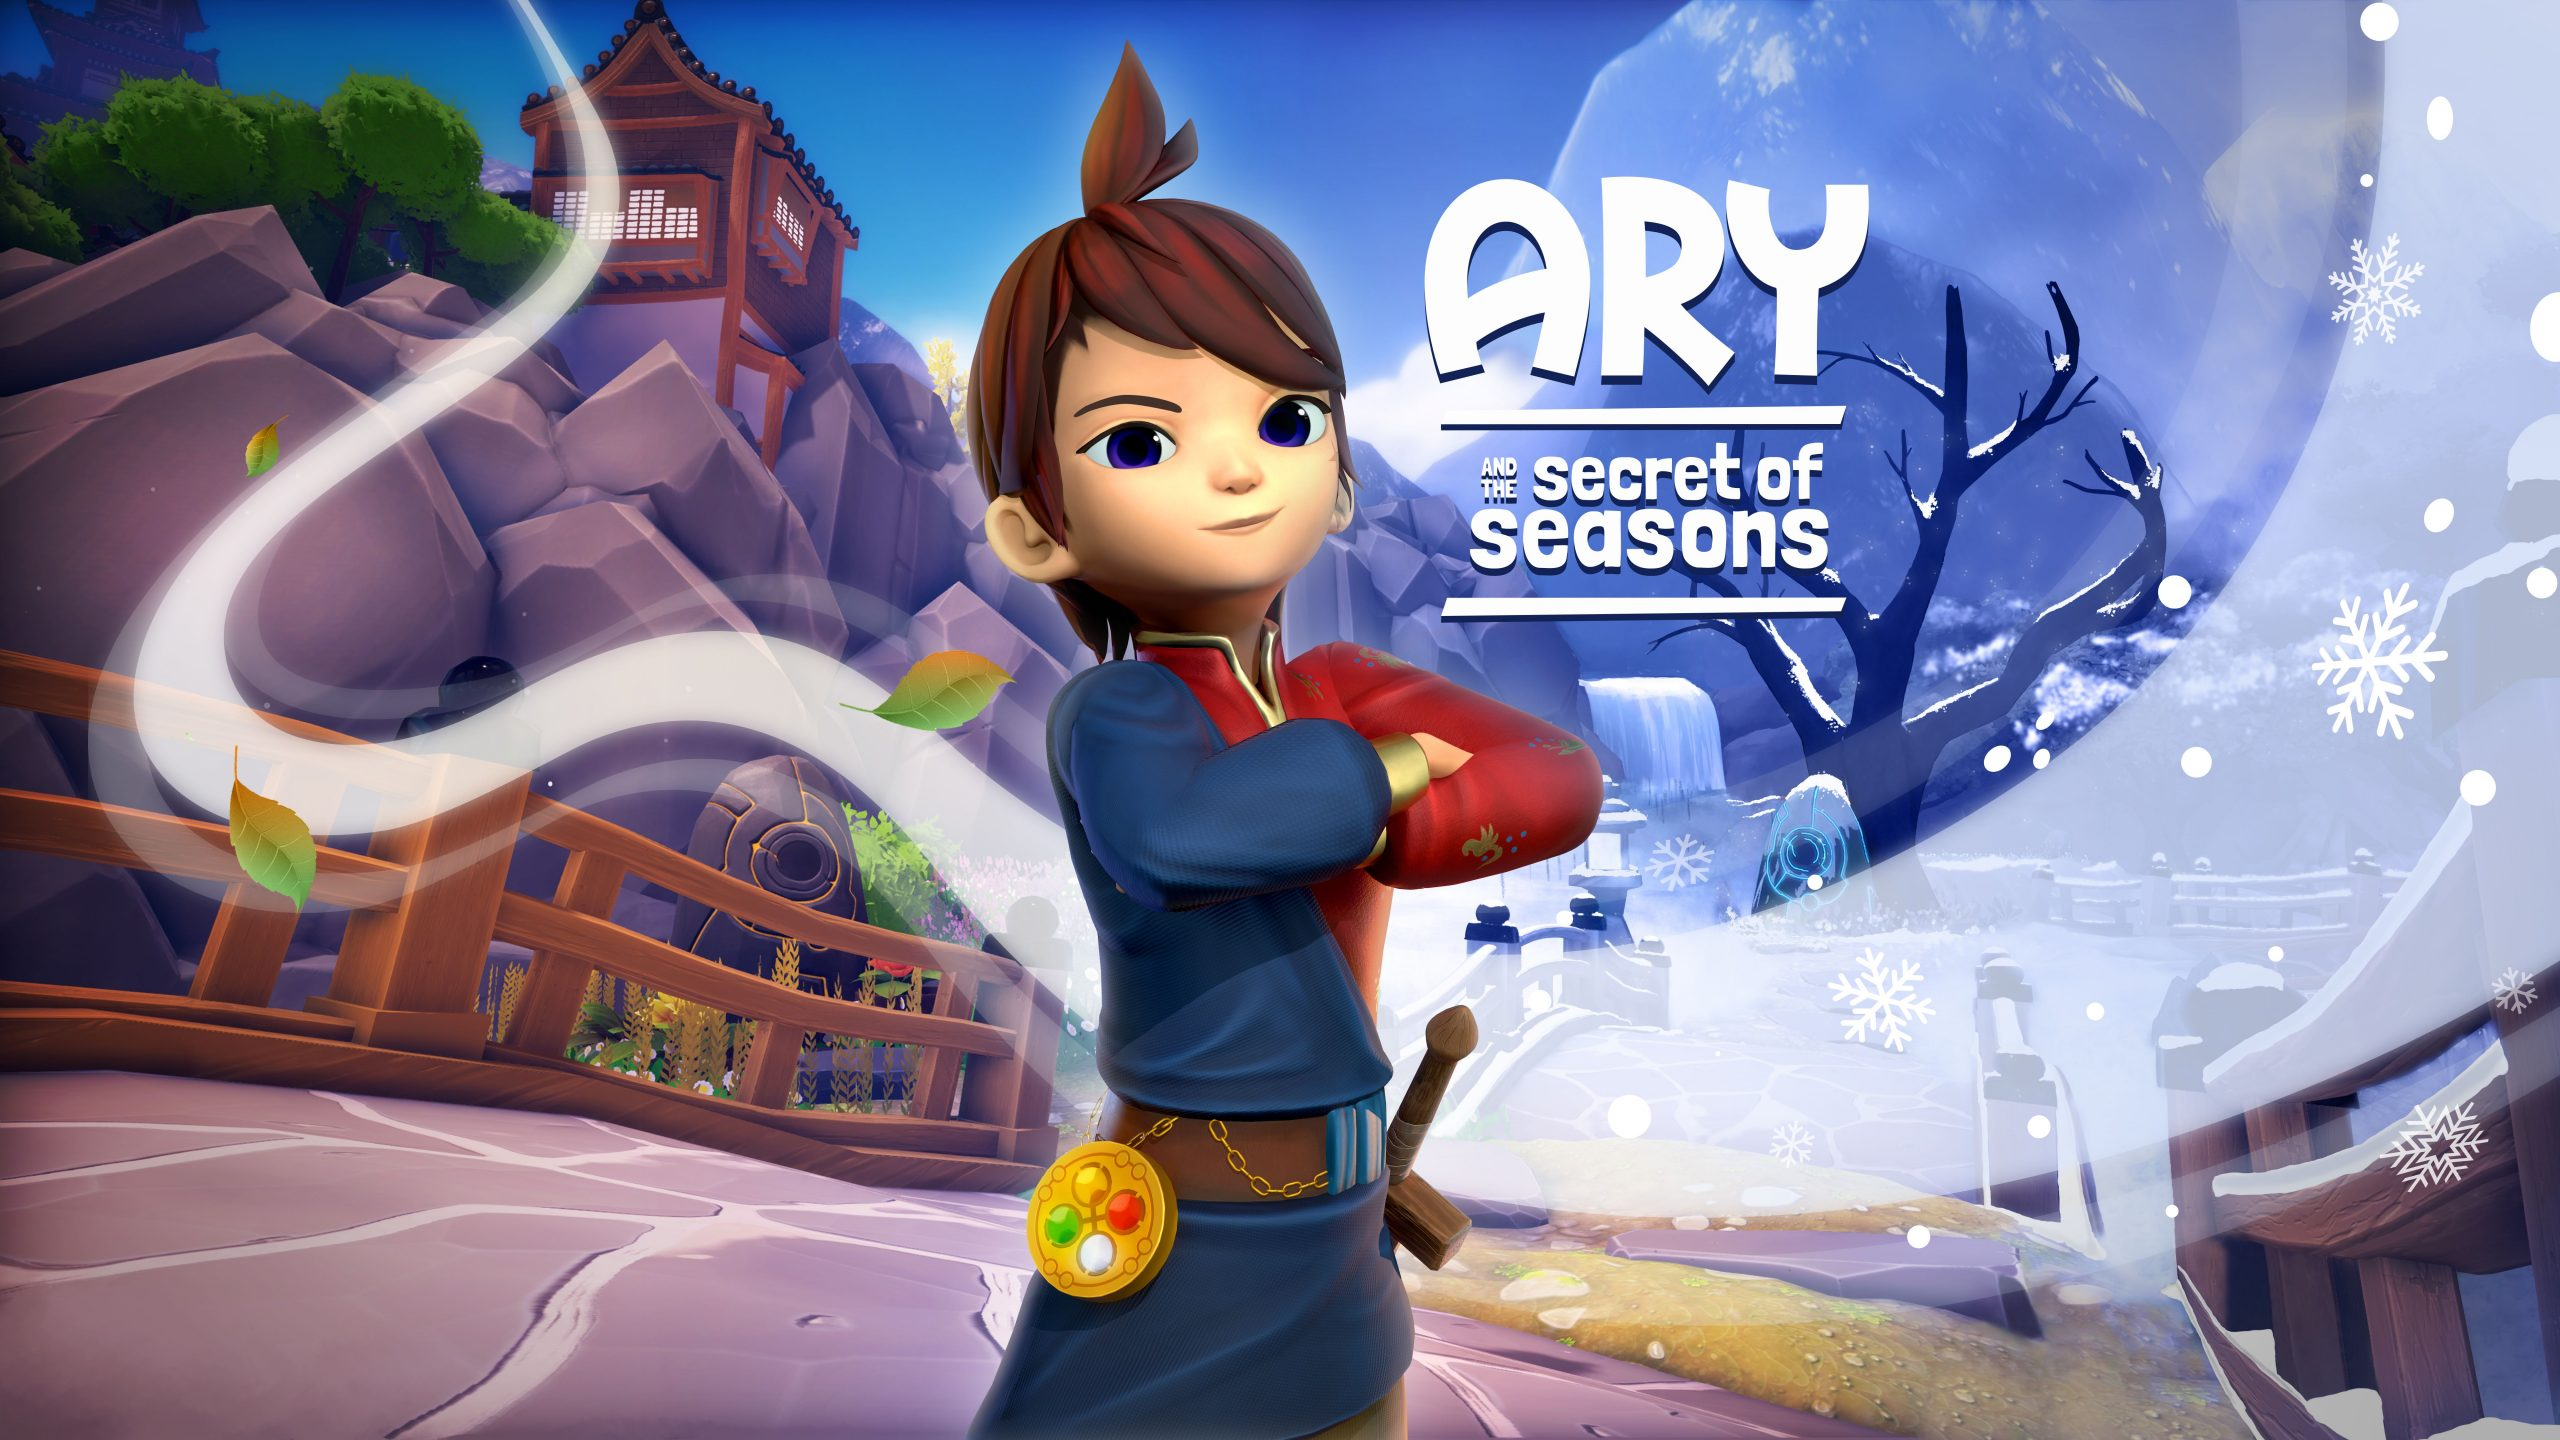 Ary and the Secret of Seasons: Disponibile ora